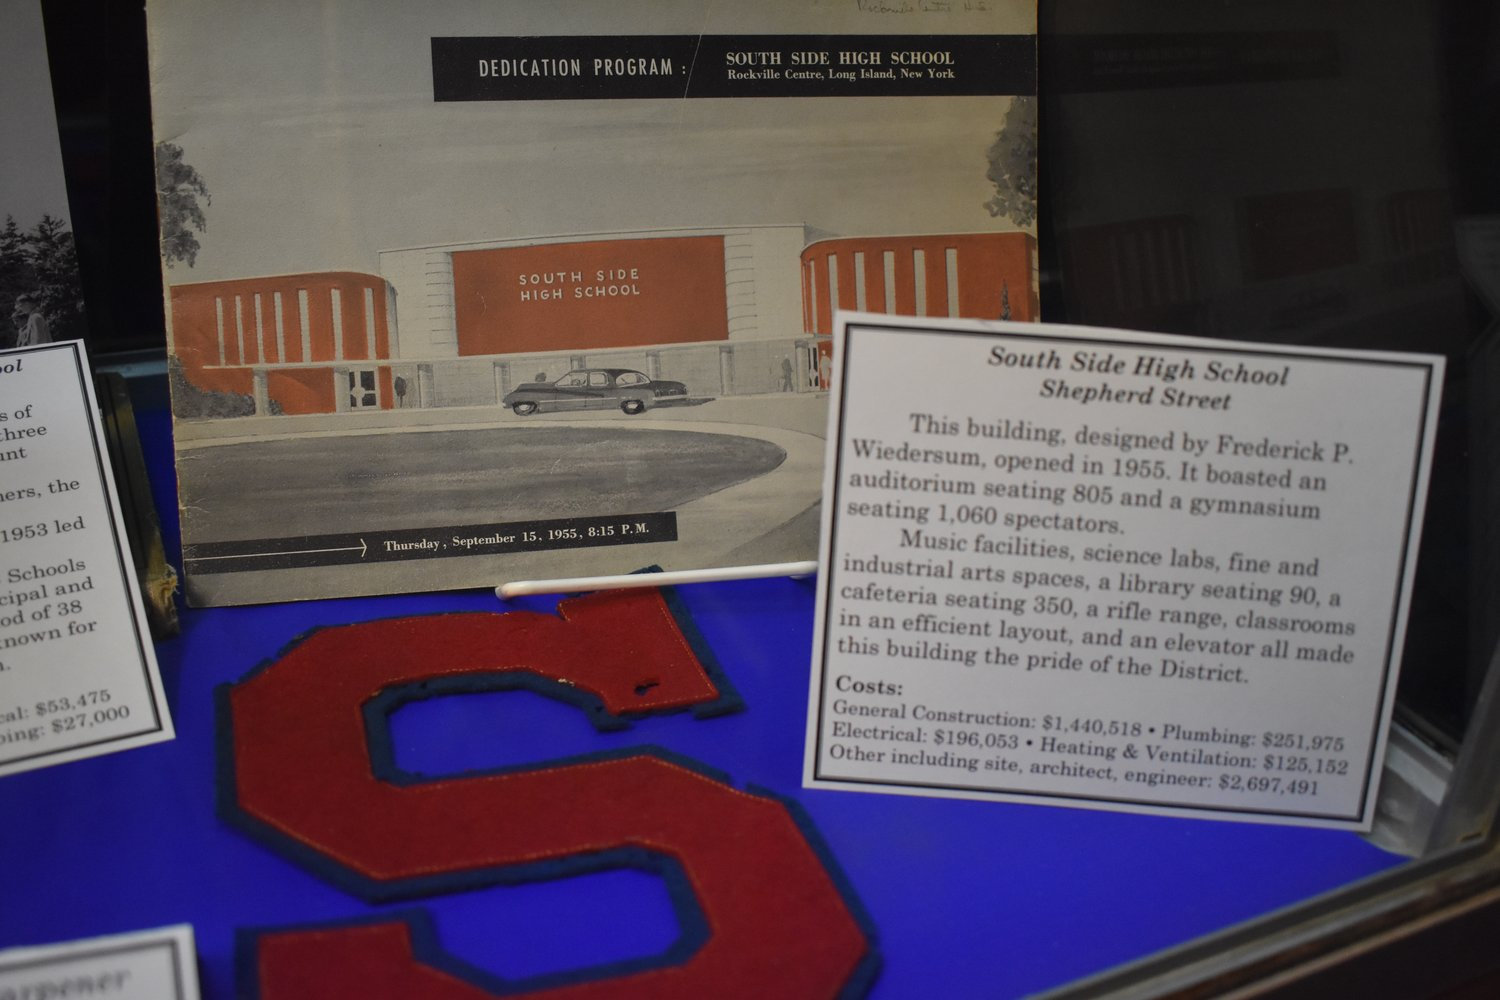 A South Side High School patch and a dedication program from 1955, when the school opened its doors at its current Shepherd Street locations are among the artifacts on display.